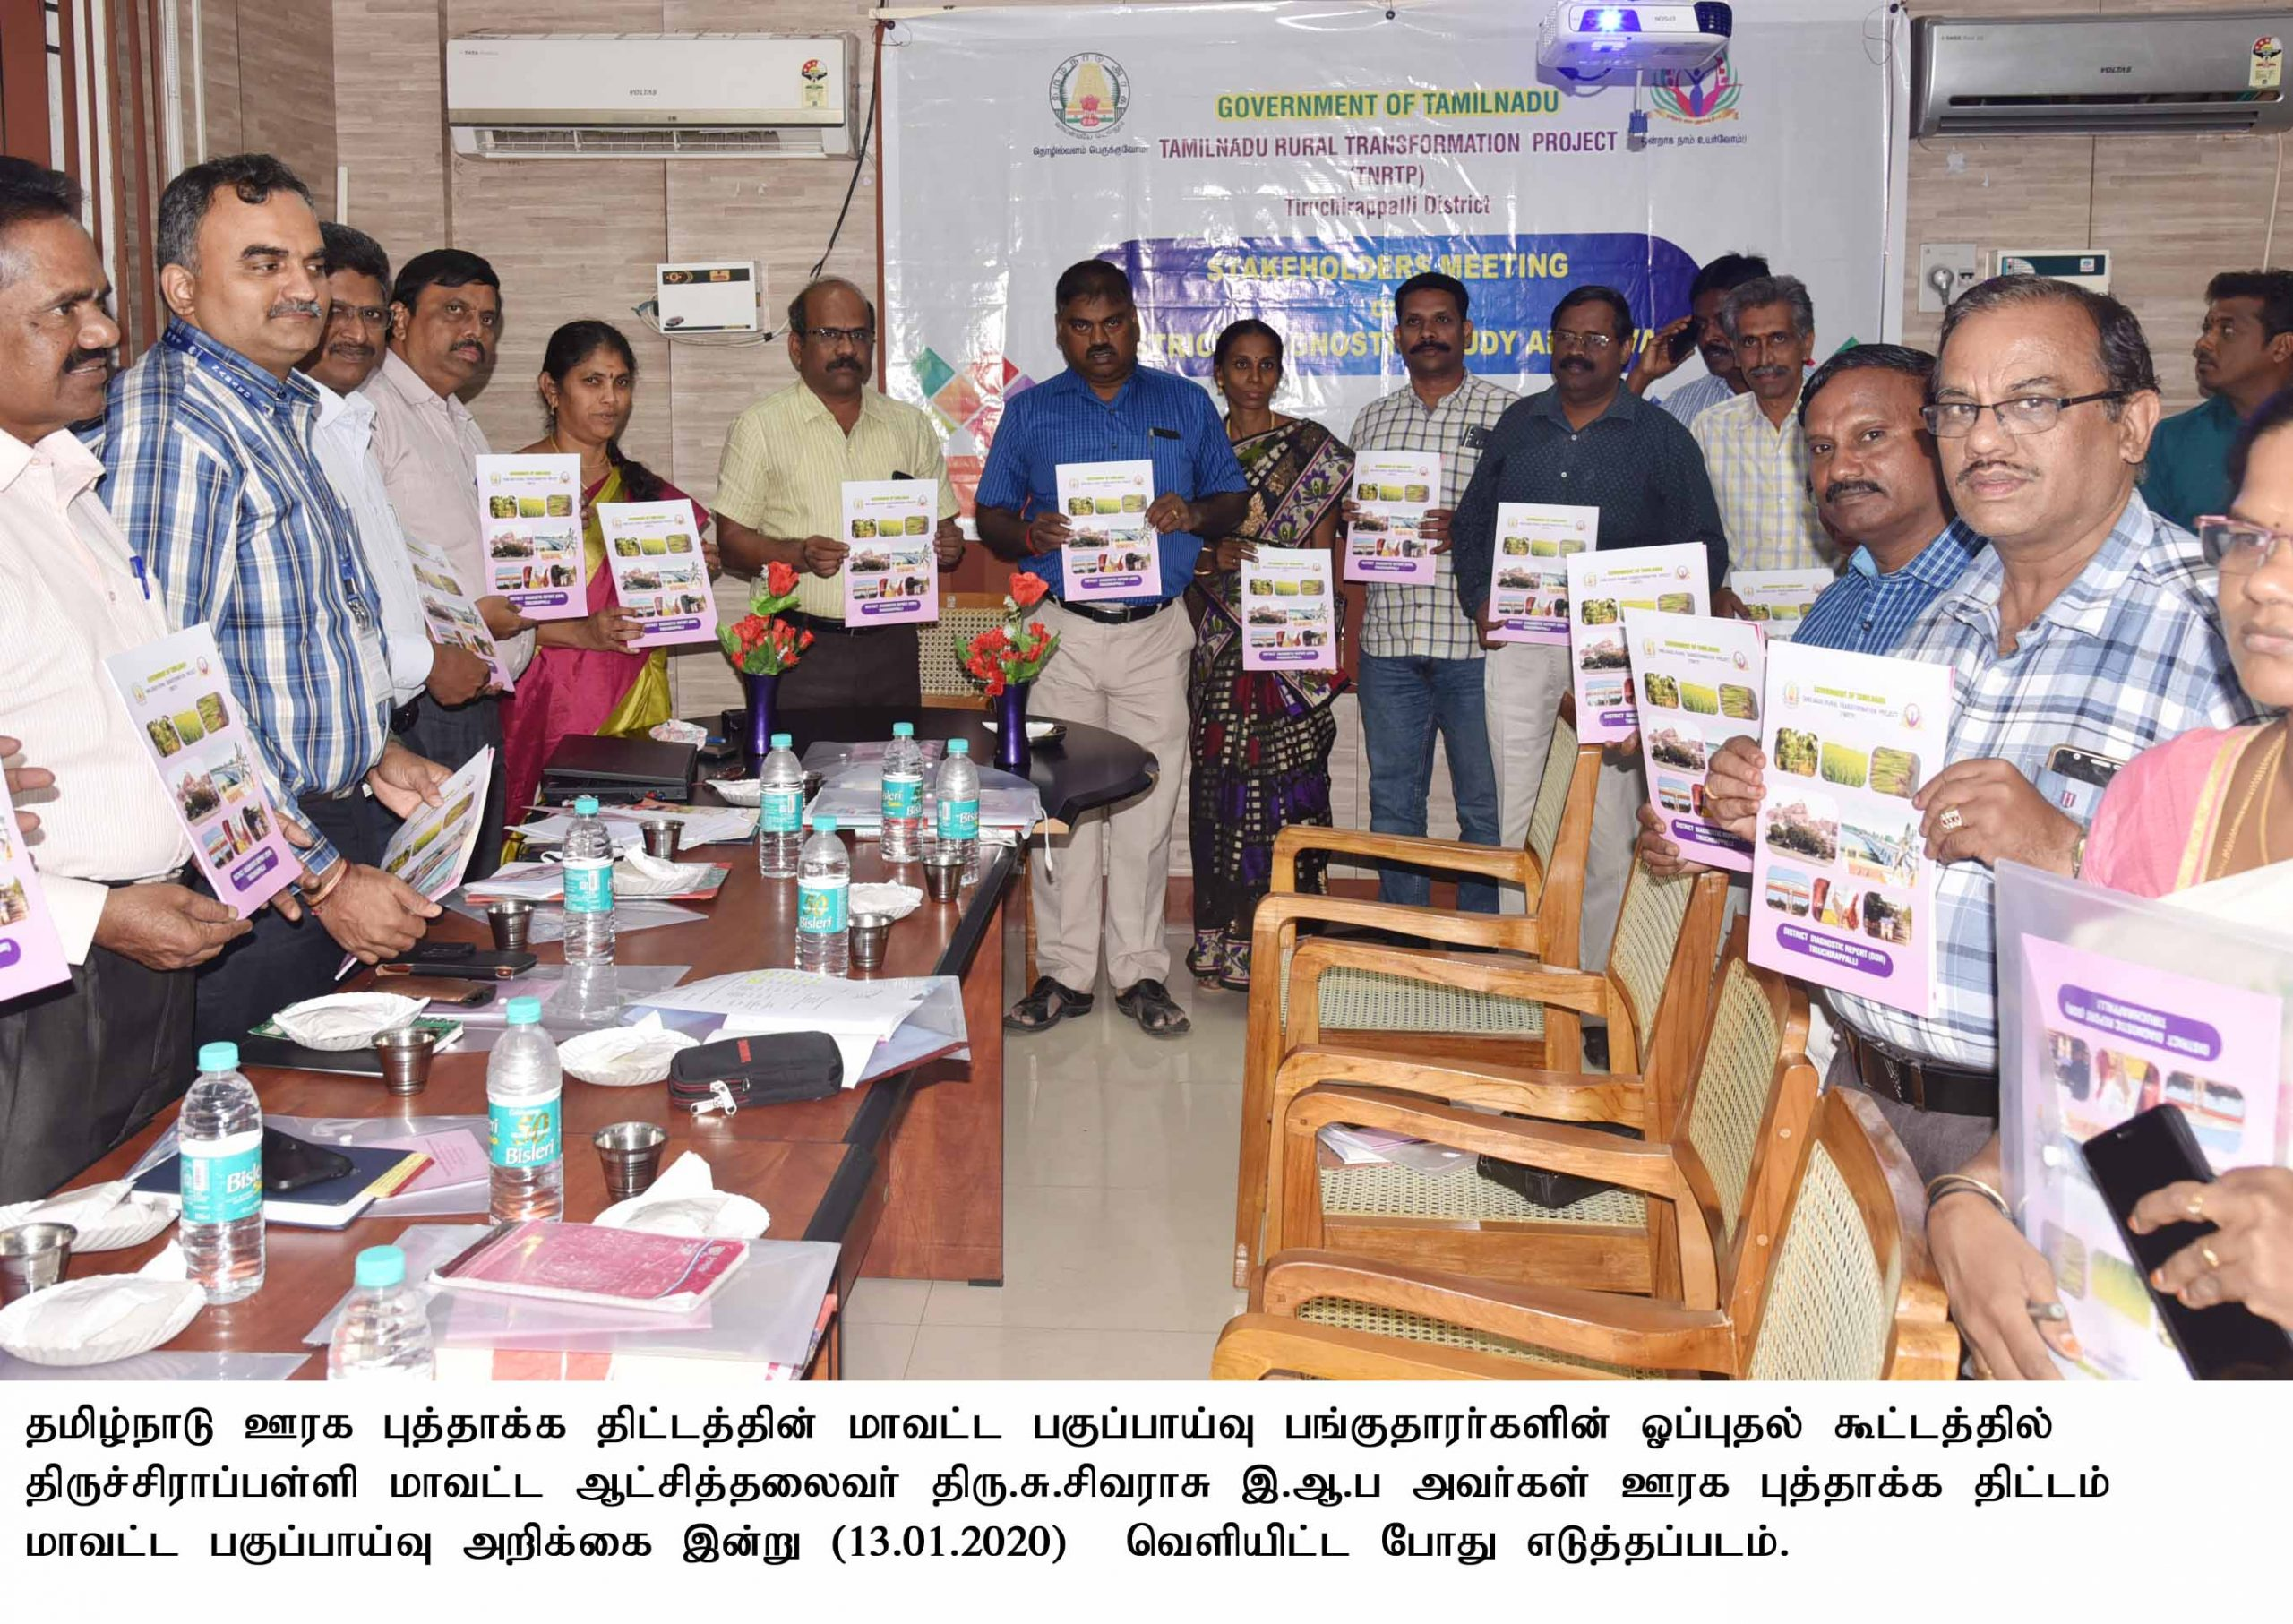 TNRTP Stakeholders Meeting held on 13-10-2020